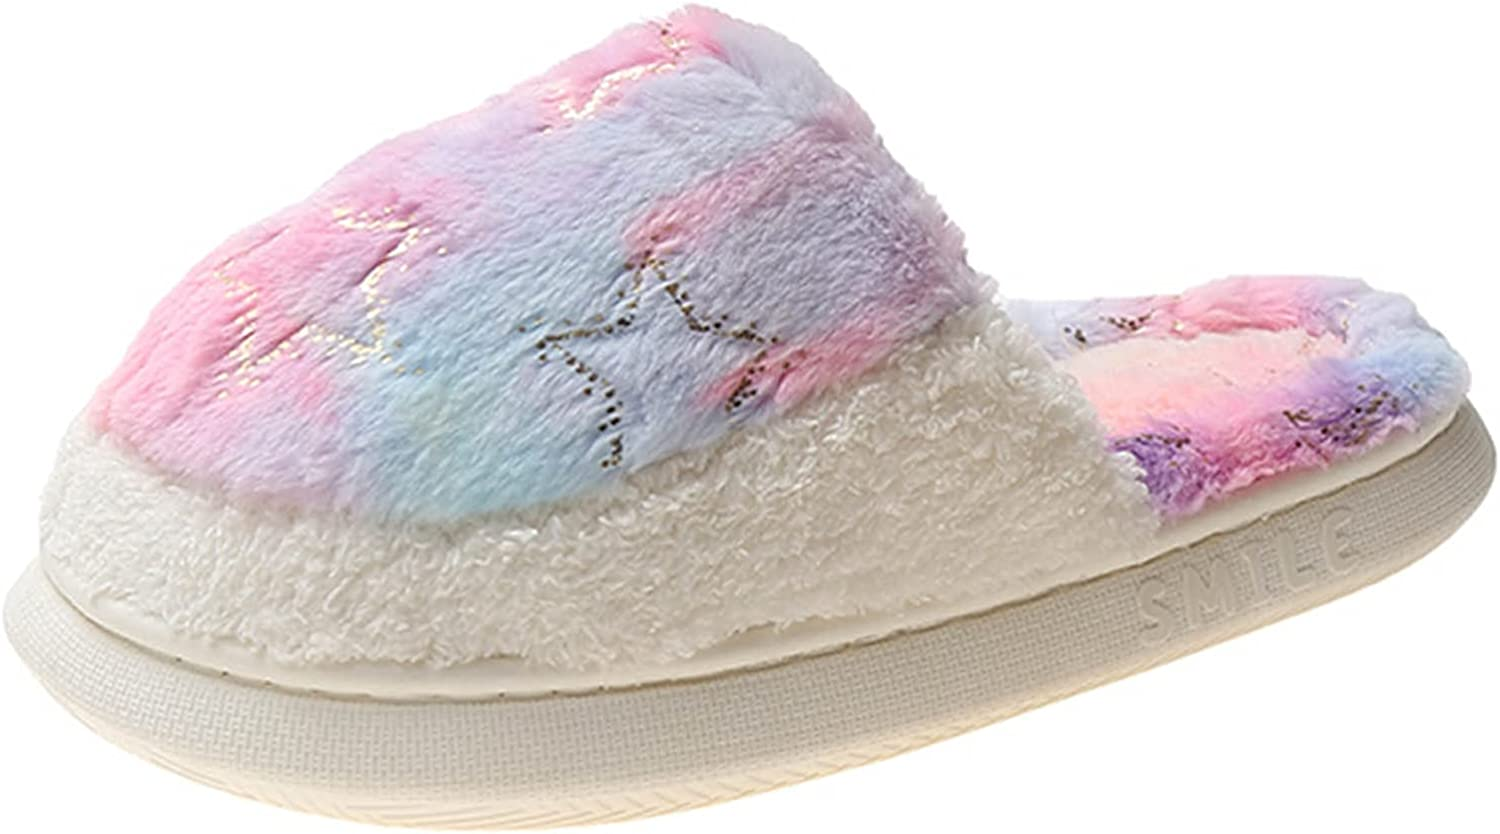 Hunauoo Slippers for Surprise price Womensoft Cotton Furry Oakland Mall Home Slippe